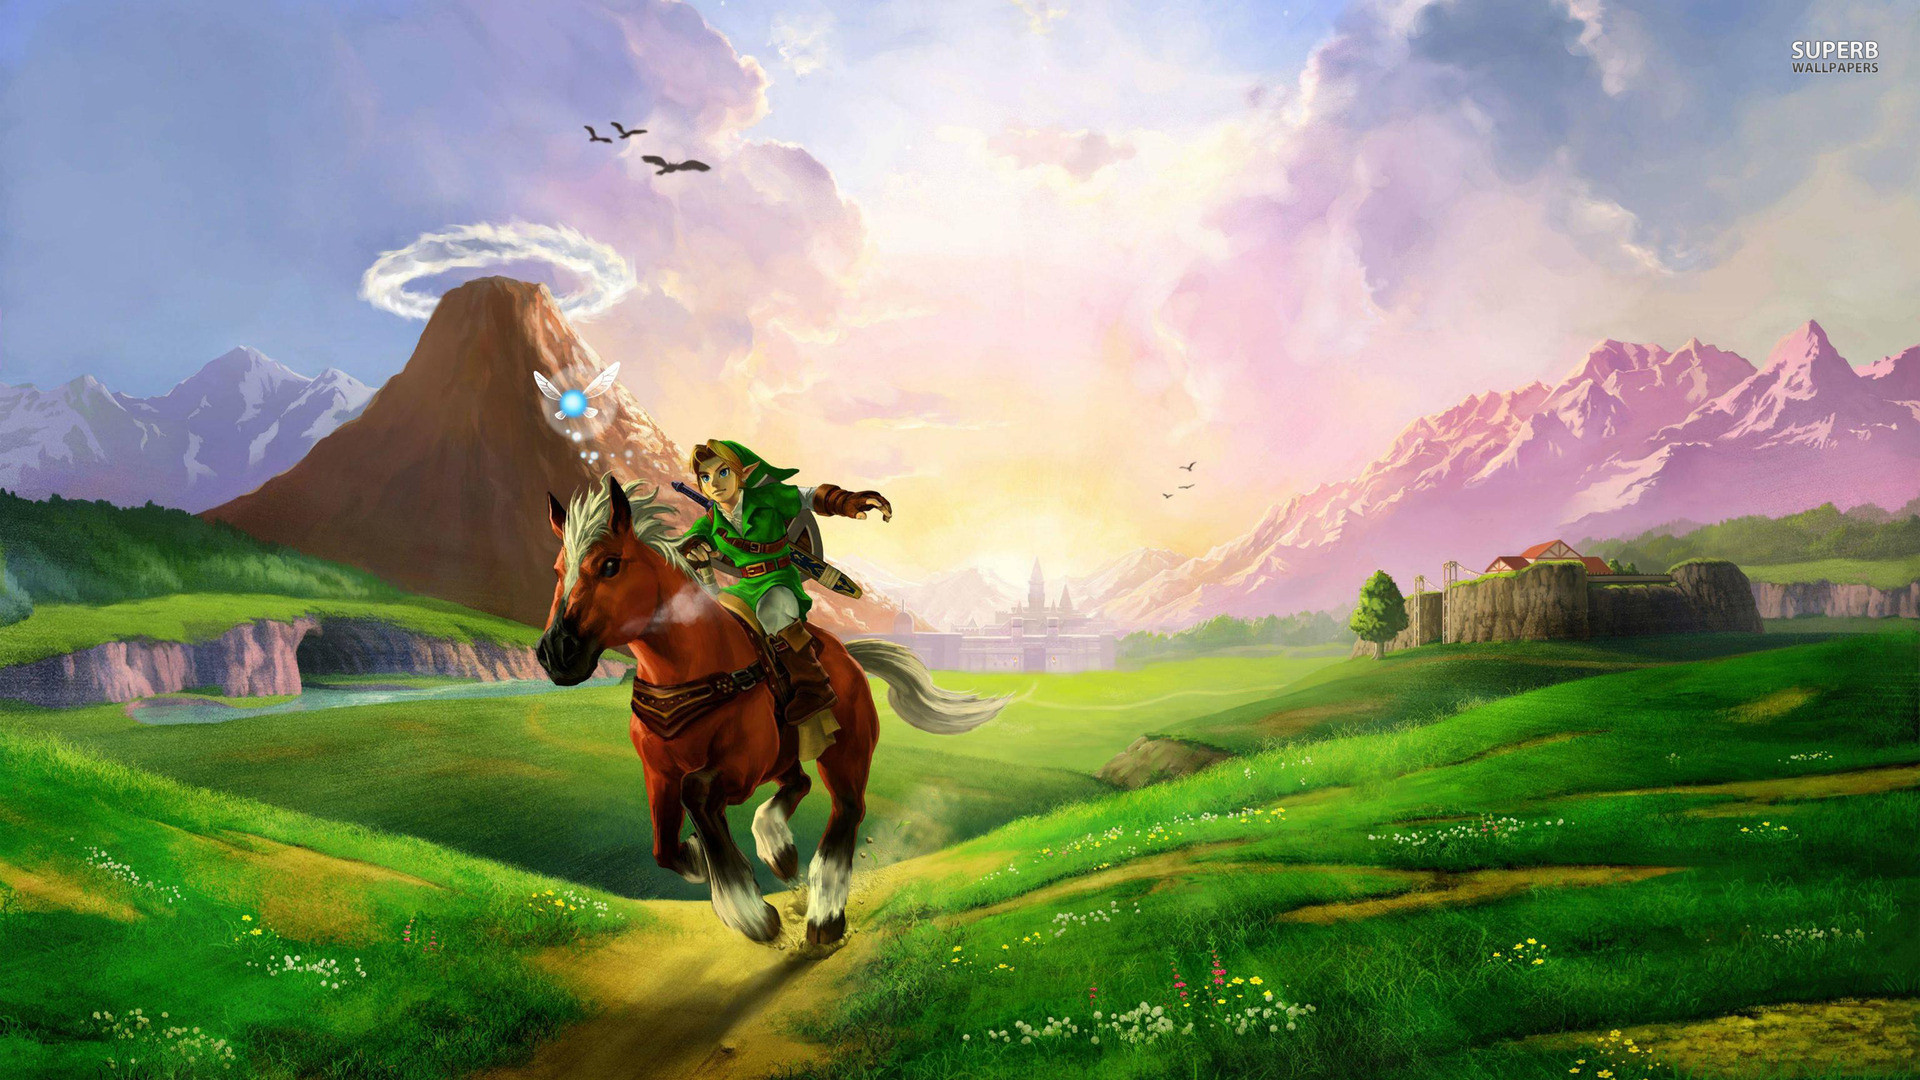 ocarina of time wallpaper hd (74+ images)